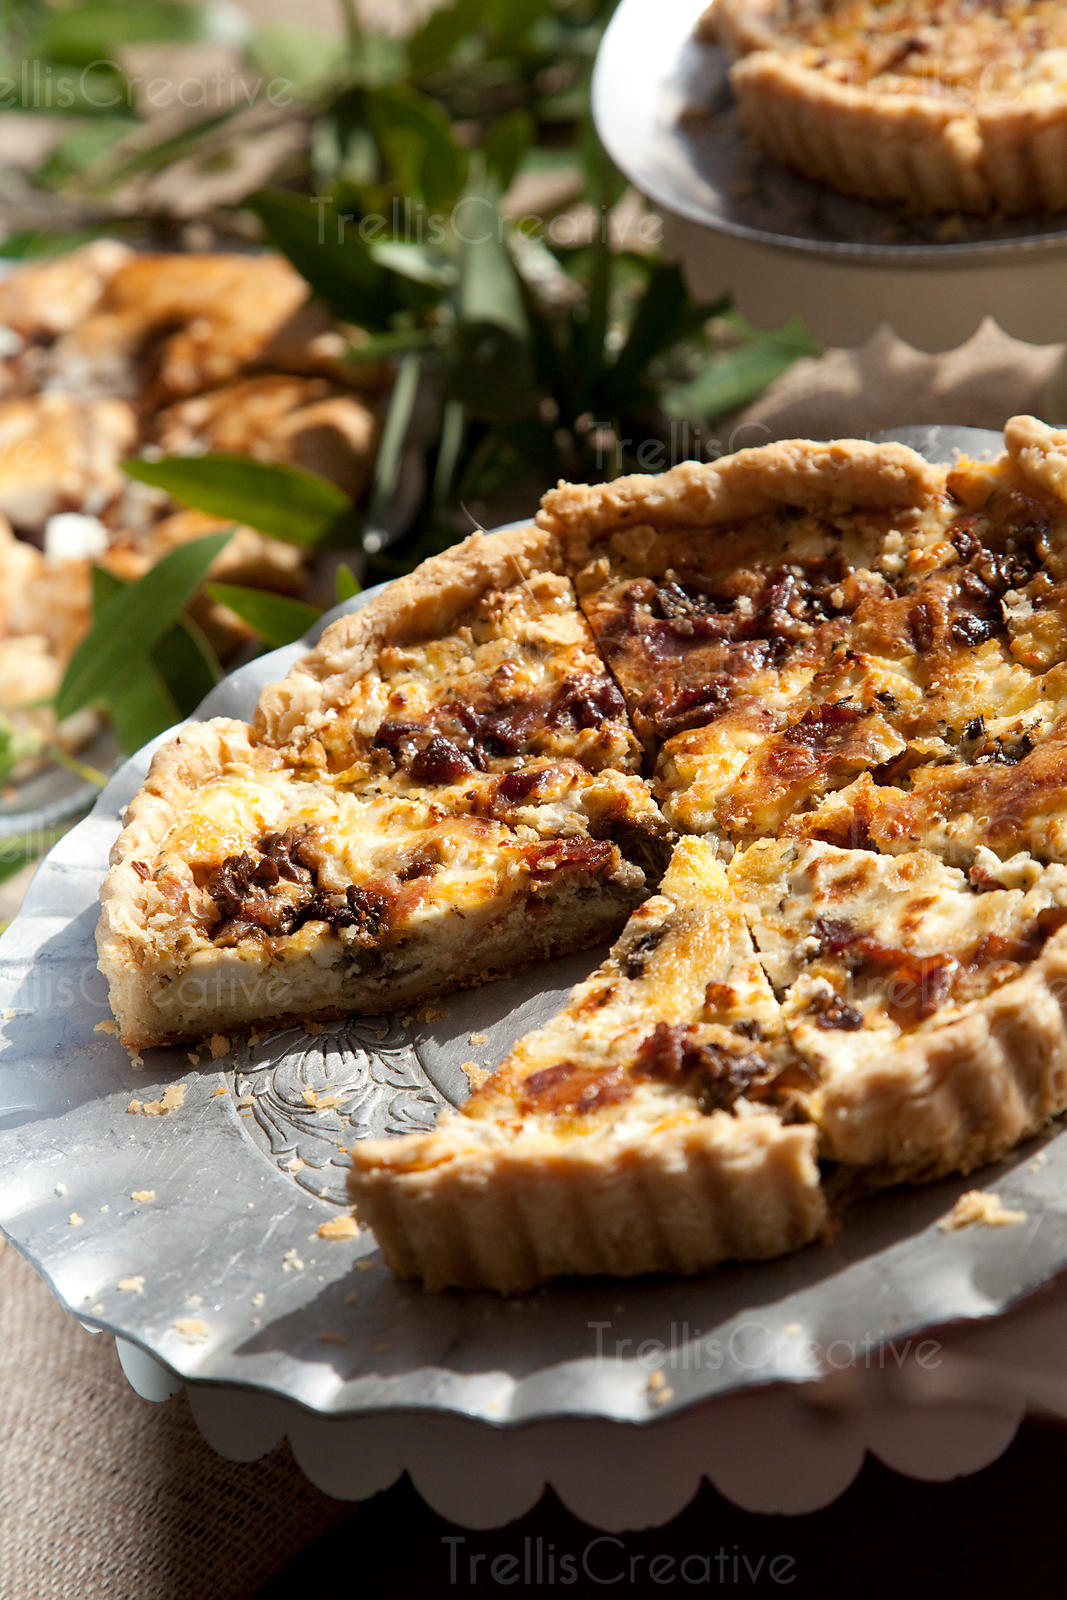 Mushroom, bacon and goat cheese quiche